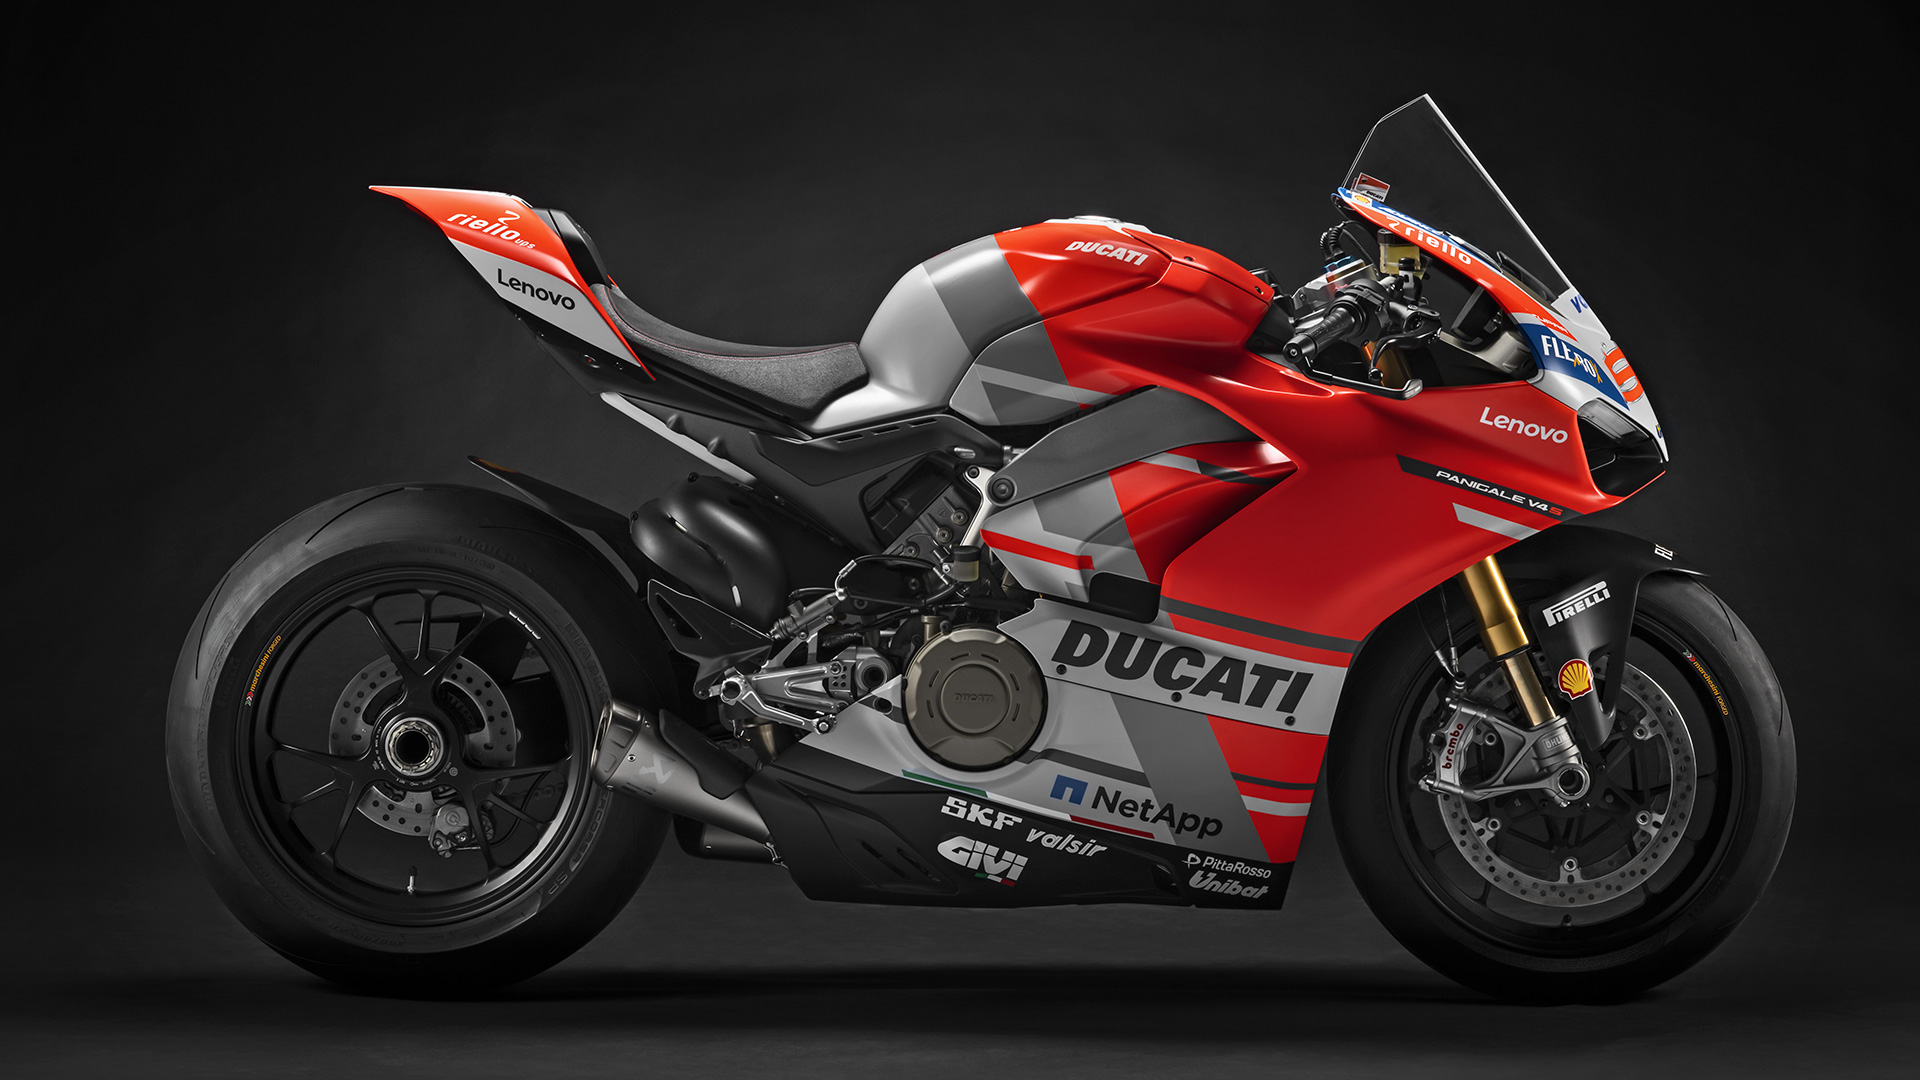 la ducati panigale v4 s de jorge lorenzo otto revista. Black Bedroom Furniture Sets. Home Design Ideas